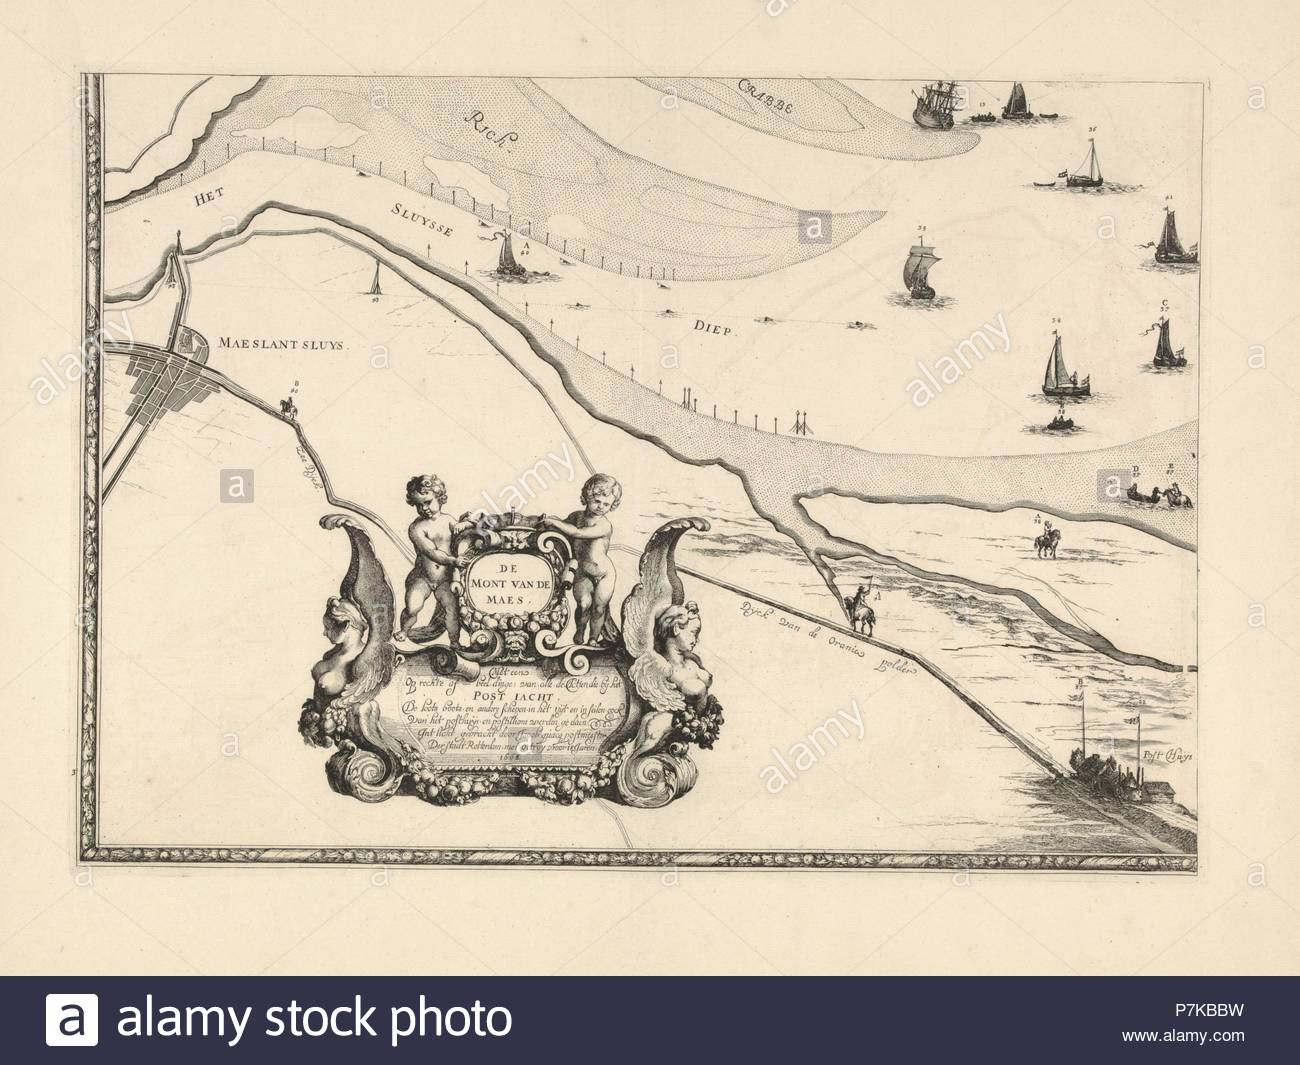 Map of Maassluis and the banks of the Meuse, The Netherlands, print maker: Joost van Geel attributed to, Jacob Quack, 1665. - Stock Image